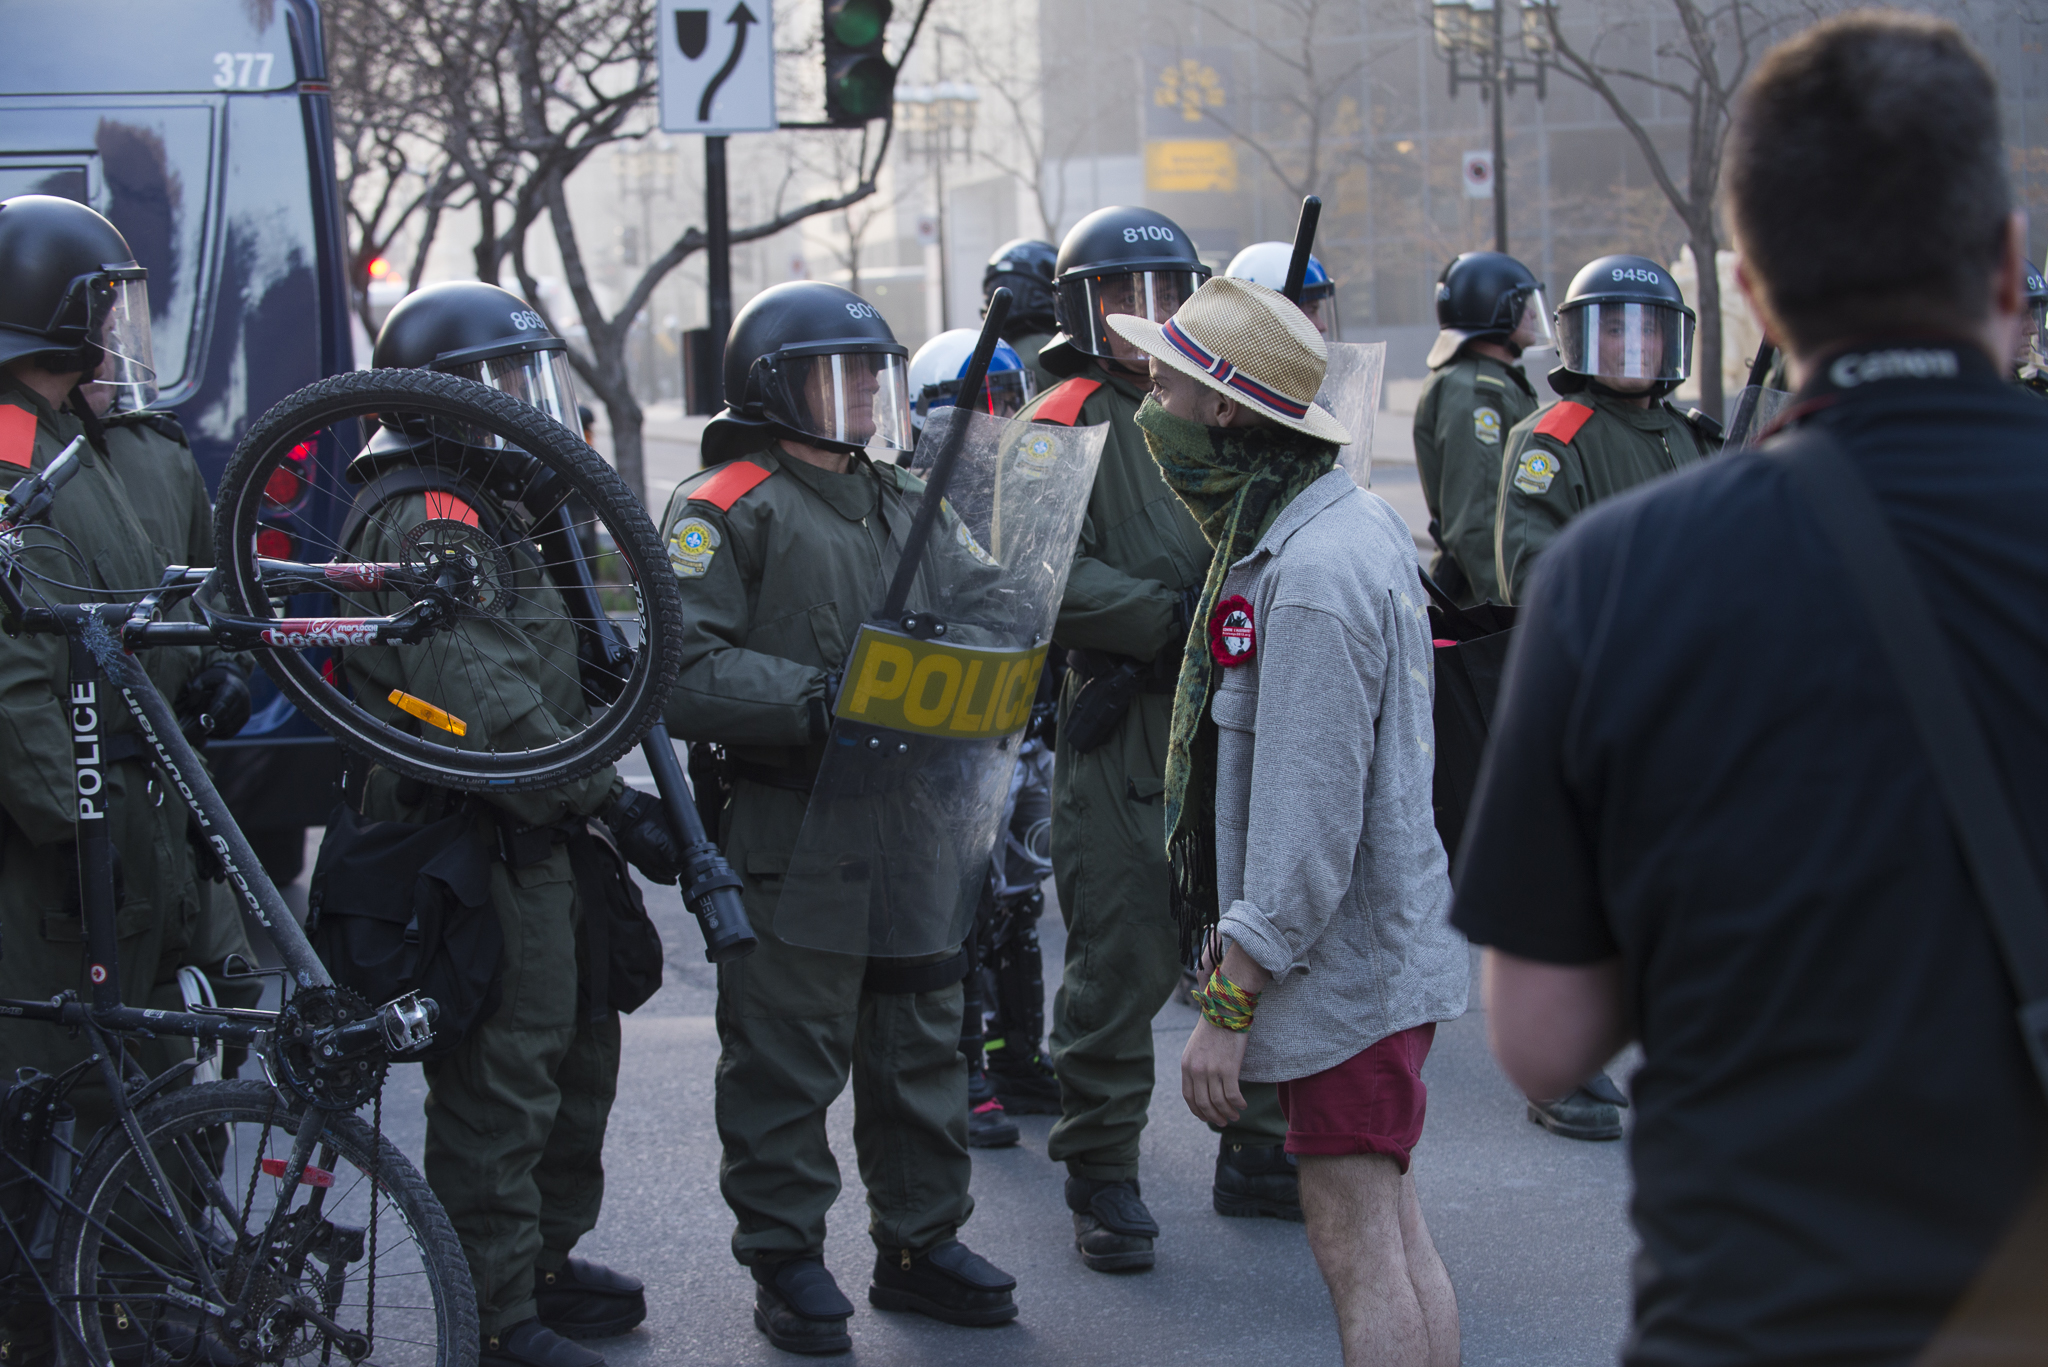 A final protester stands in defiance as riot police yell at him to back off because he is too close.- A.I.